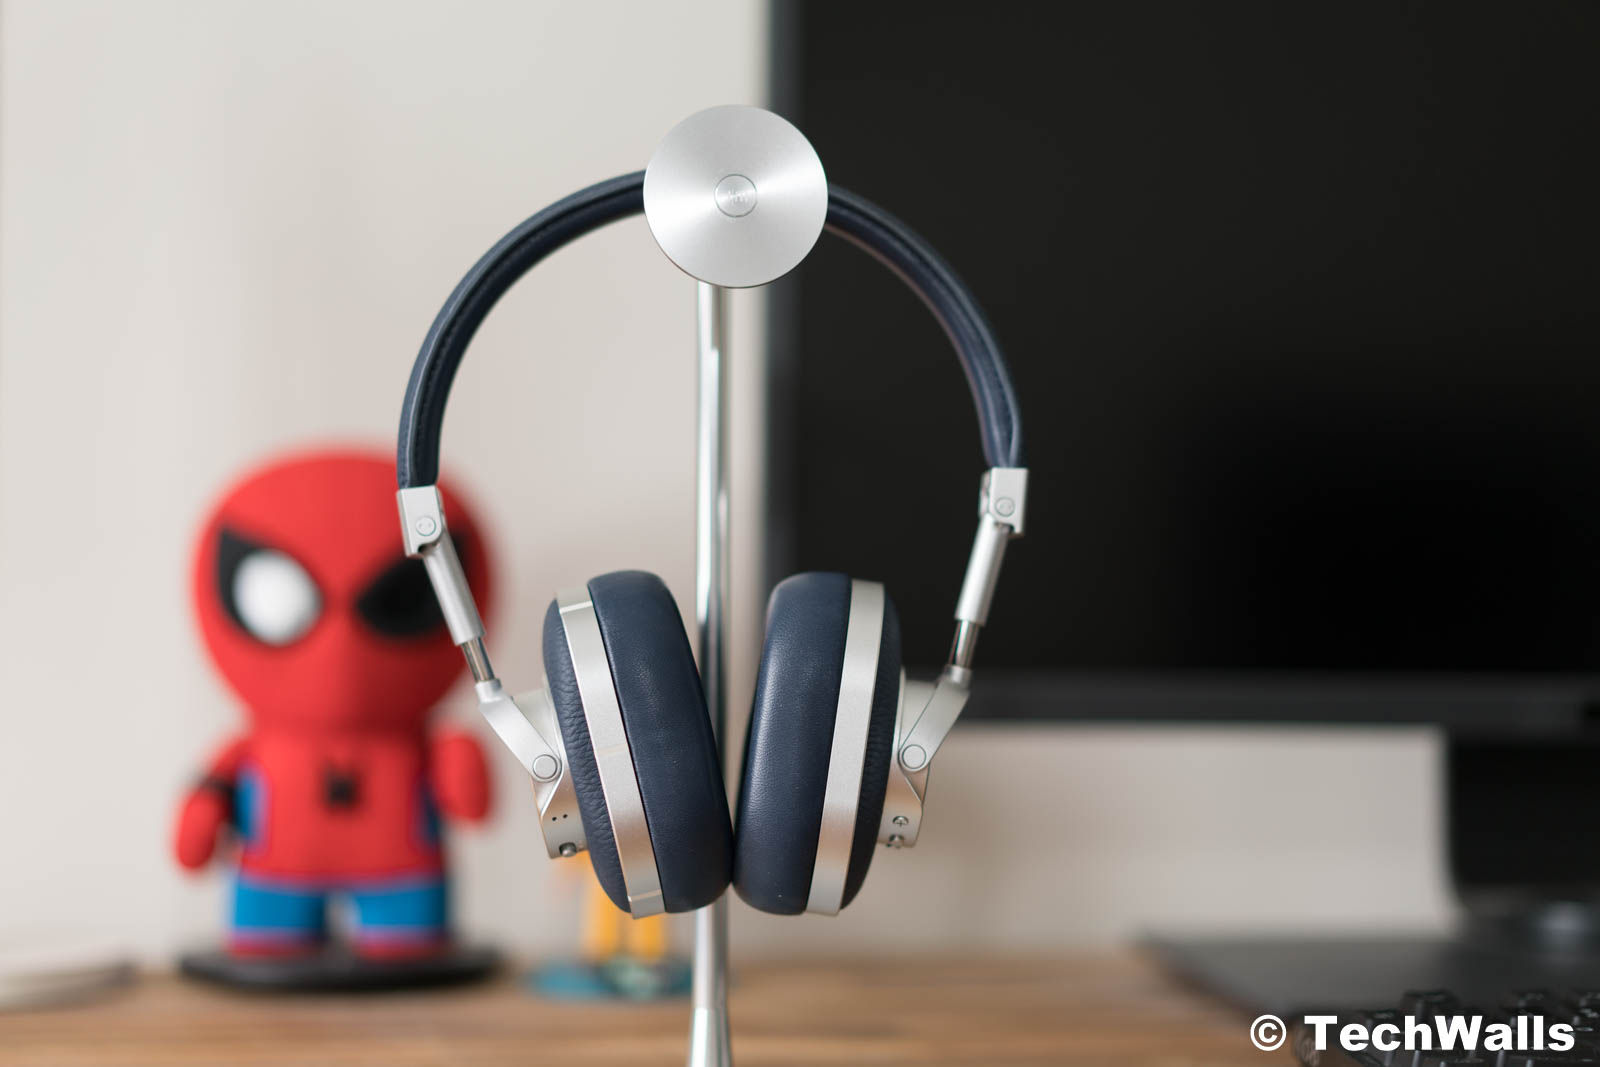 8d8235905bc ... on previous Master & Dynamic headphones but the wireless models have  some notable improvements. The MW60 features Bluetooth 4.1 with Aptx  high-quality ...